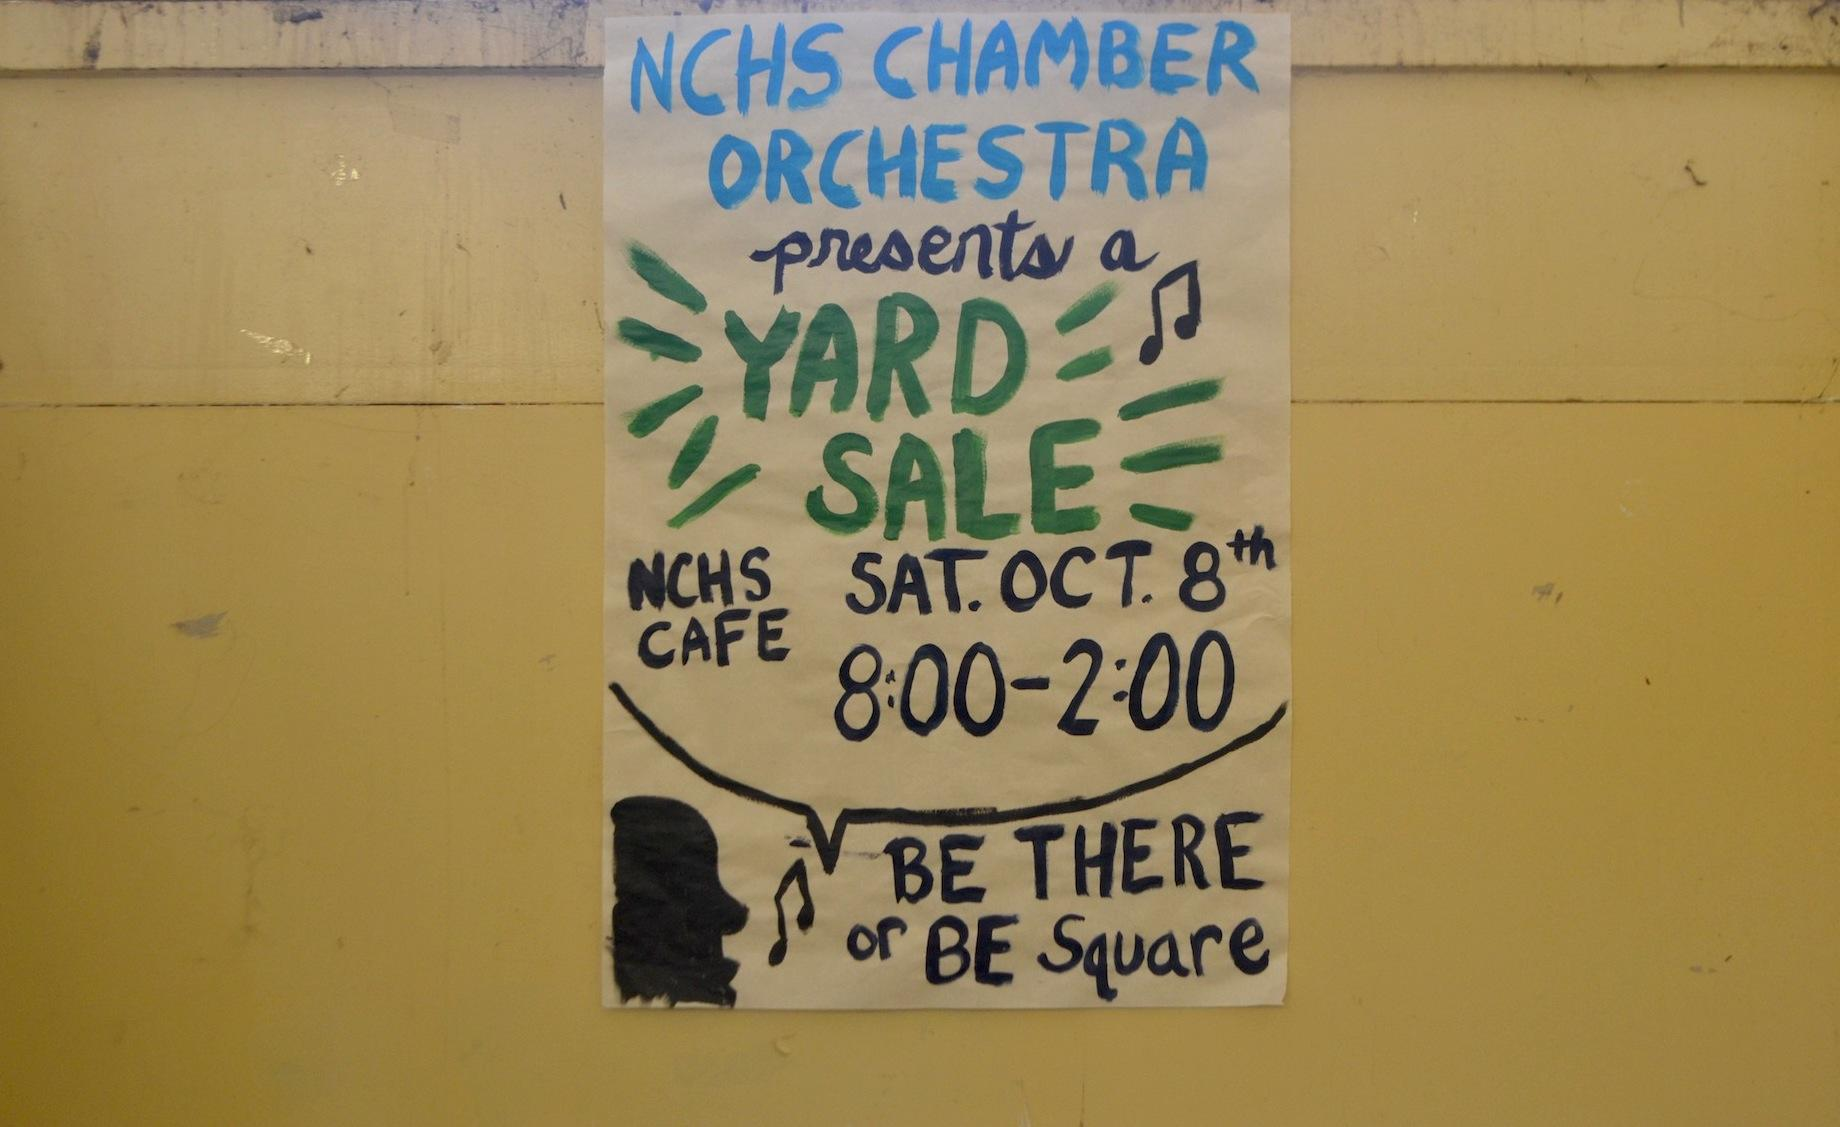 The NC Chamber Orchestra will hold a yard sale on October 8 from 8 a.m. to 2 p.m. in the cafeteria to raise money for the program.